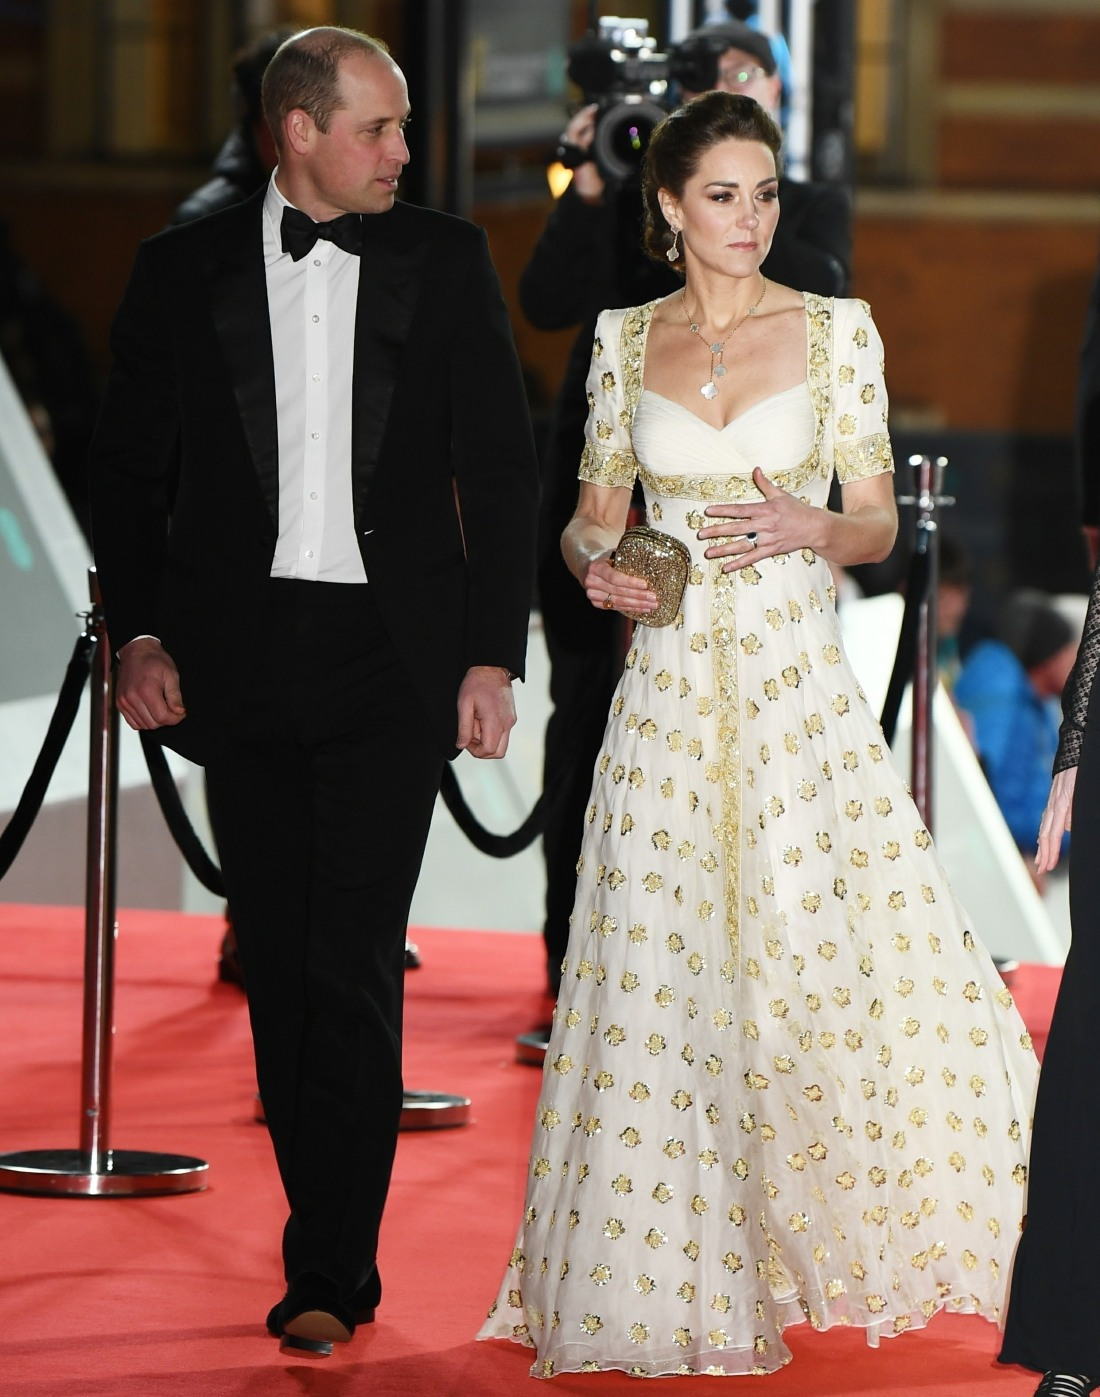 The Duke and Duchess of Cambridge attend the EE British Academy Film Awards 2020 in London